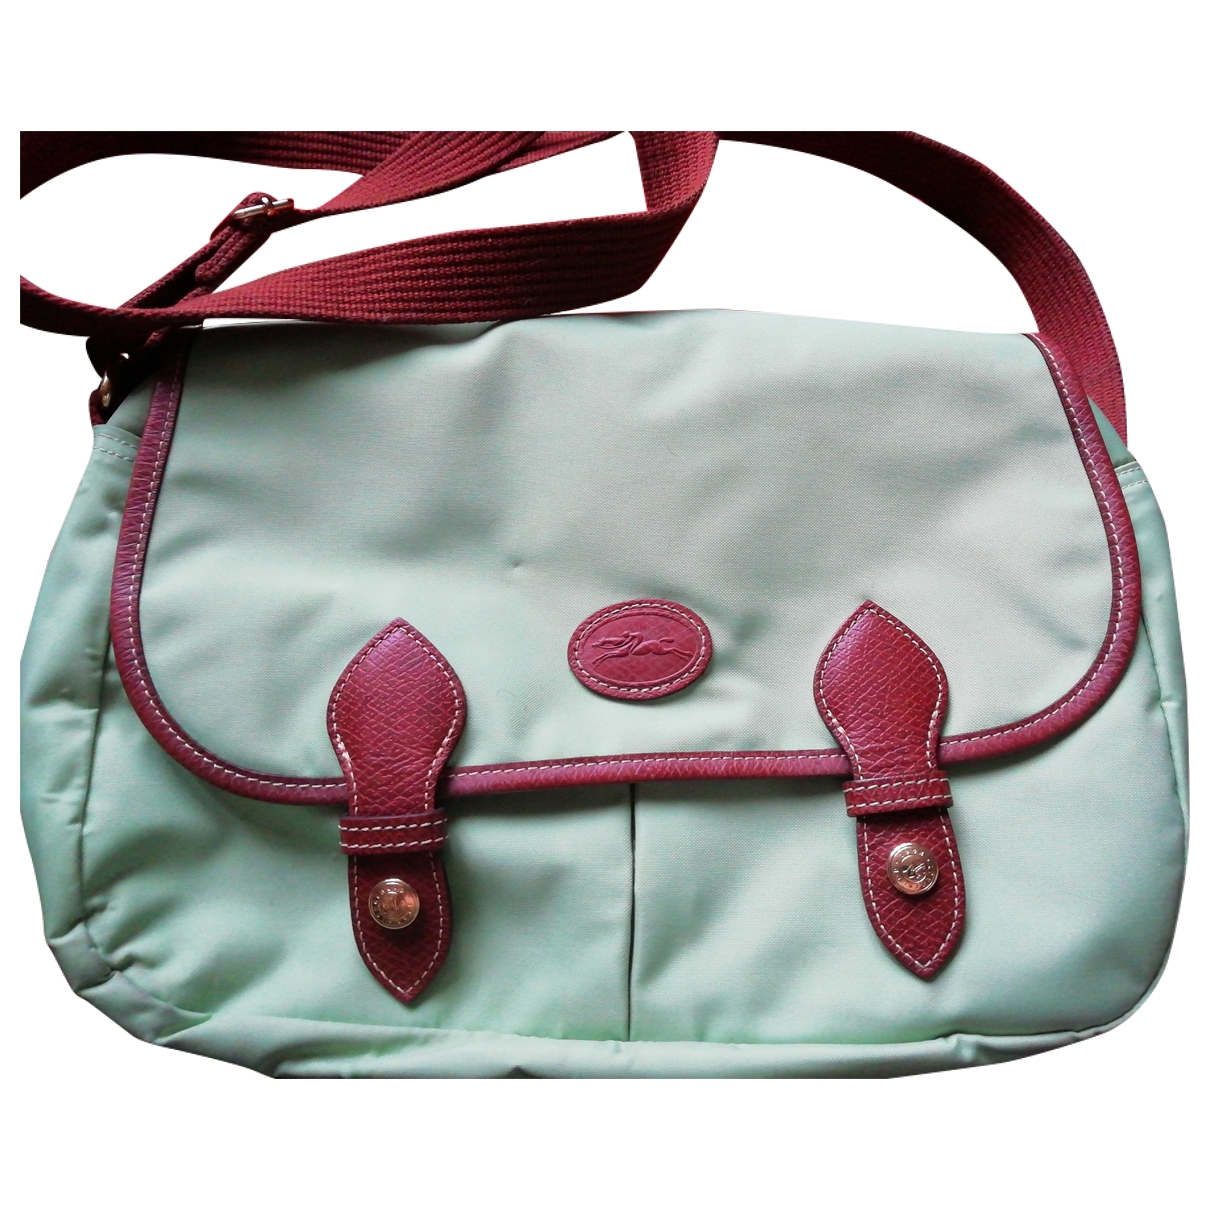 Longchamp \N Green handbag for Women \N